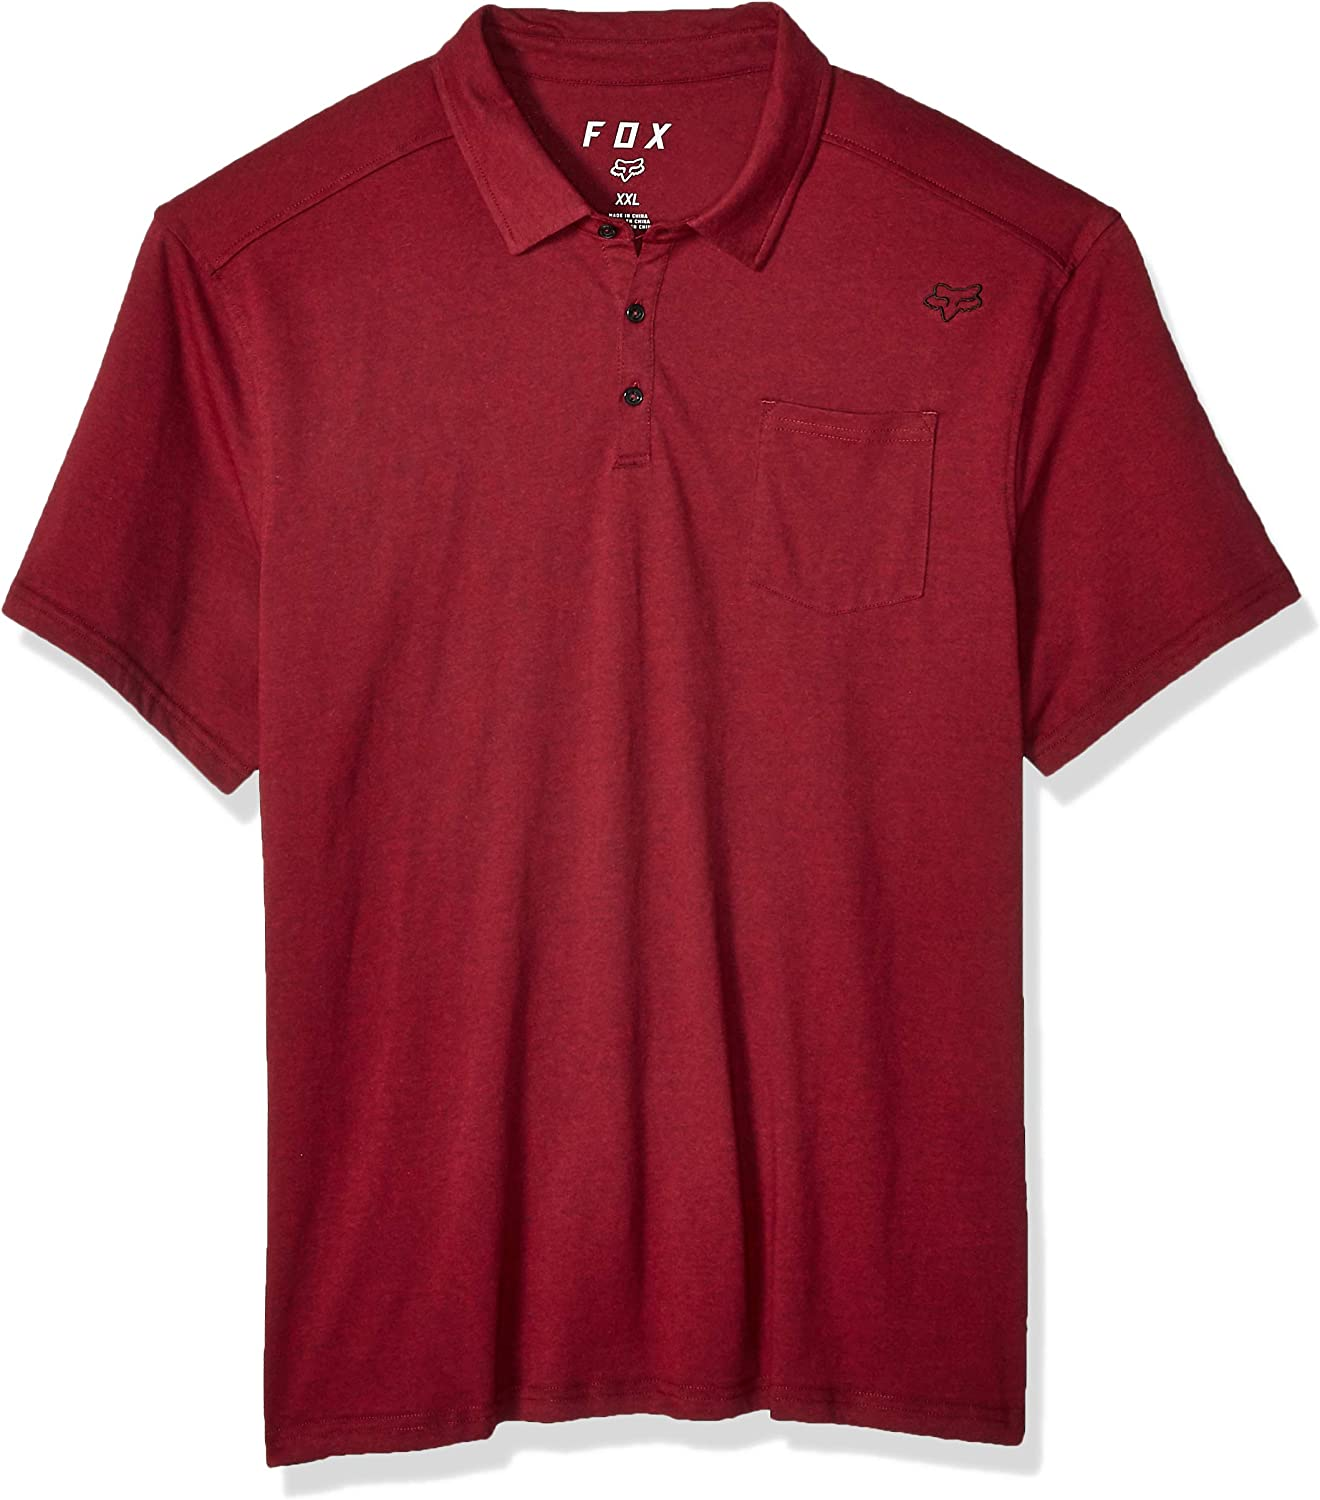 Fox Racing Polo Legacy Polo Shirt GT XL: Amazon.es: Ropa y accesorios